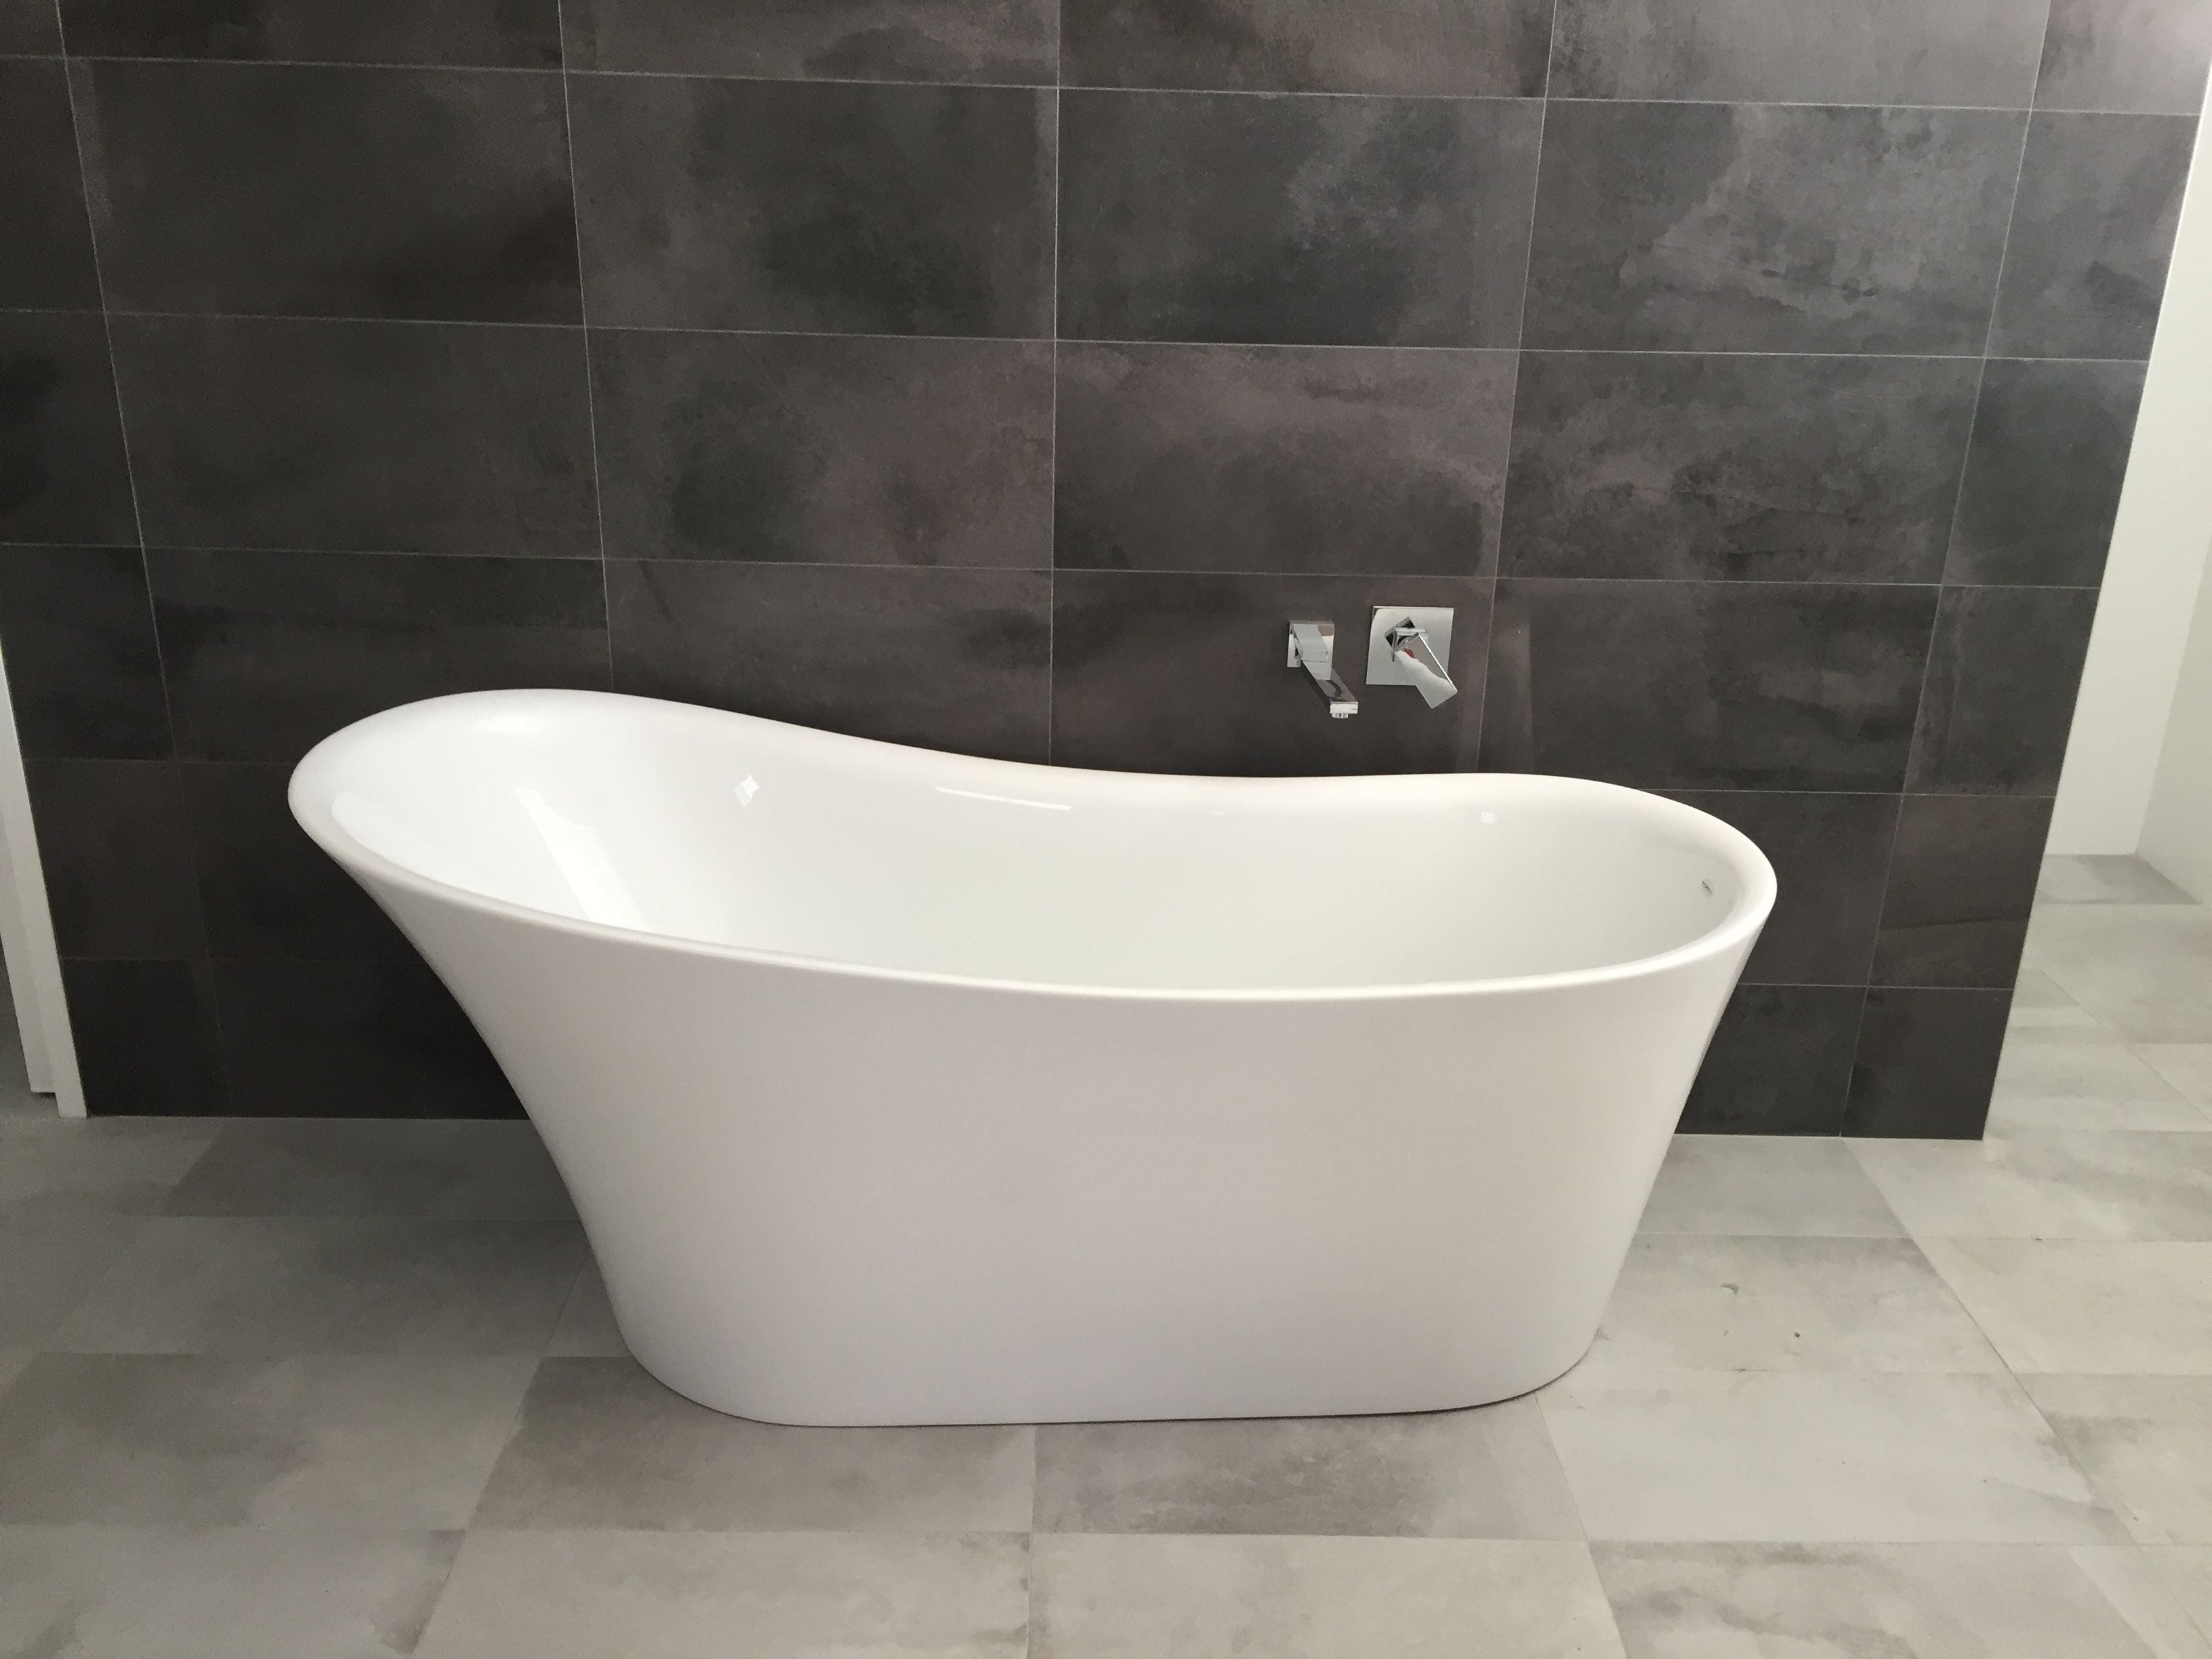 Freestanding bath dark grey feature wall light grey floor tiles freestanding bath dark grey feature wall light grey floor tiles toilet to dailygadgetfo Image collections